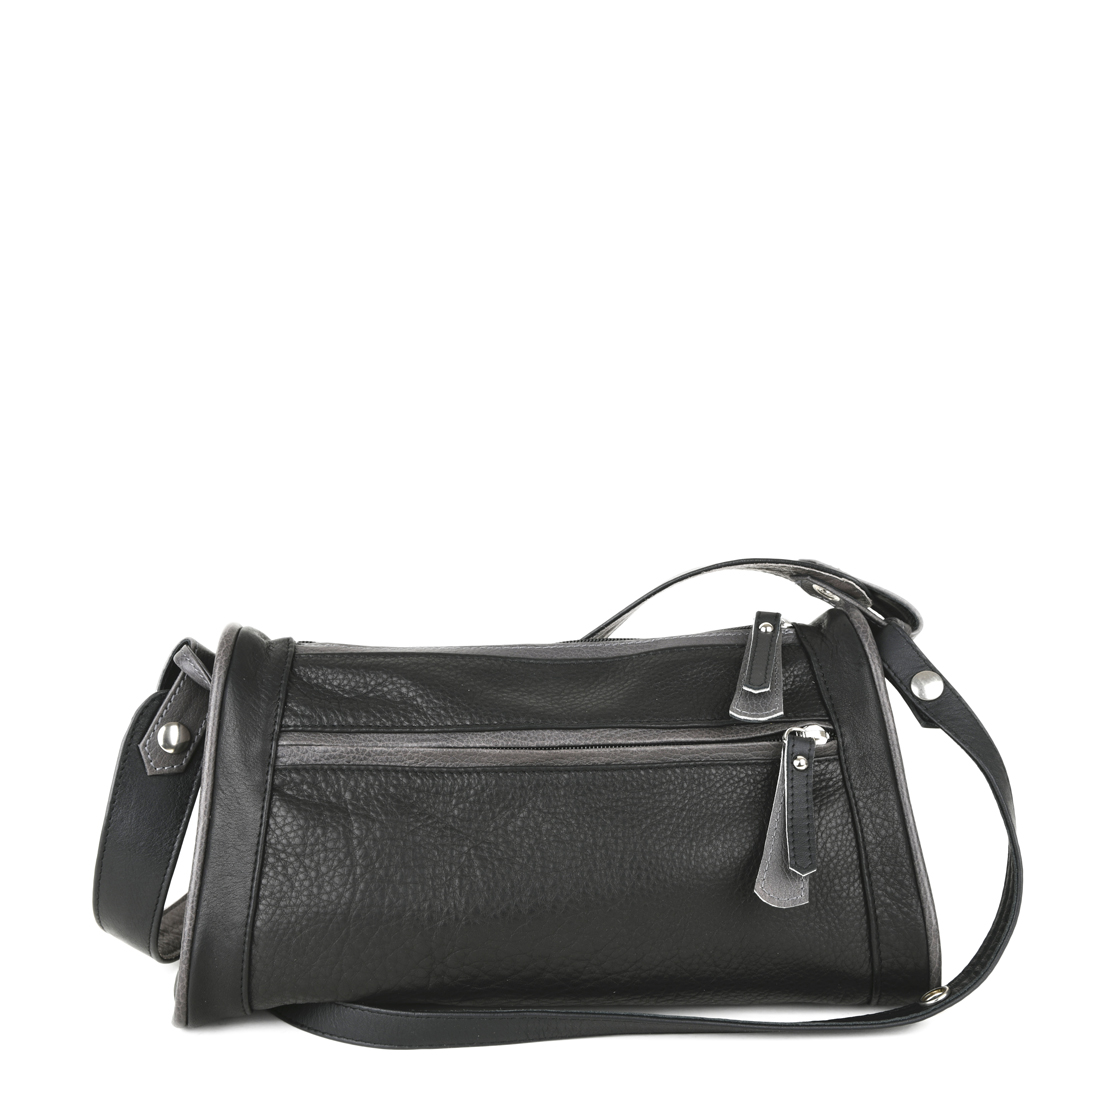 Petra Black Leather Shoulder Bag